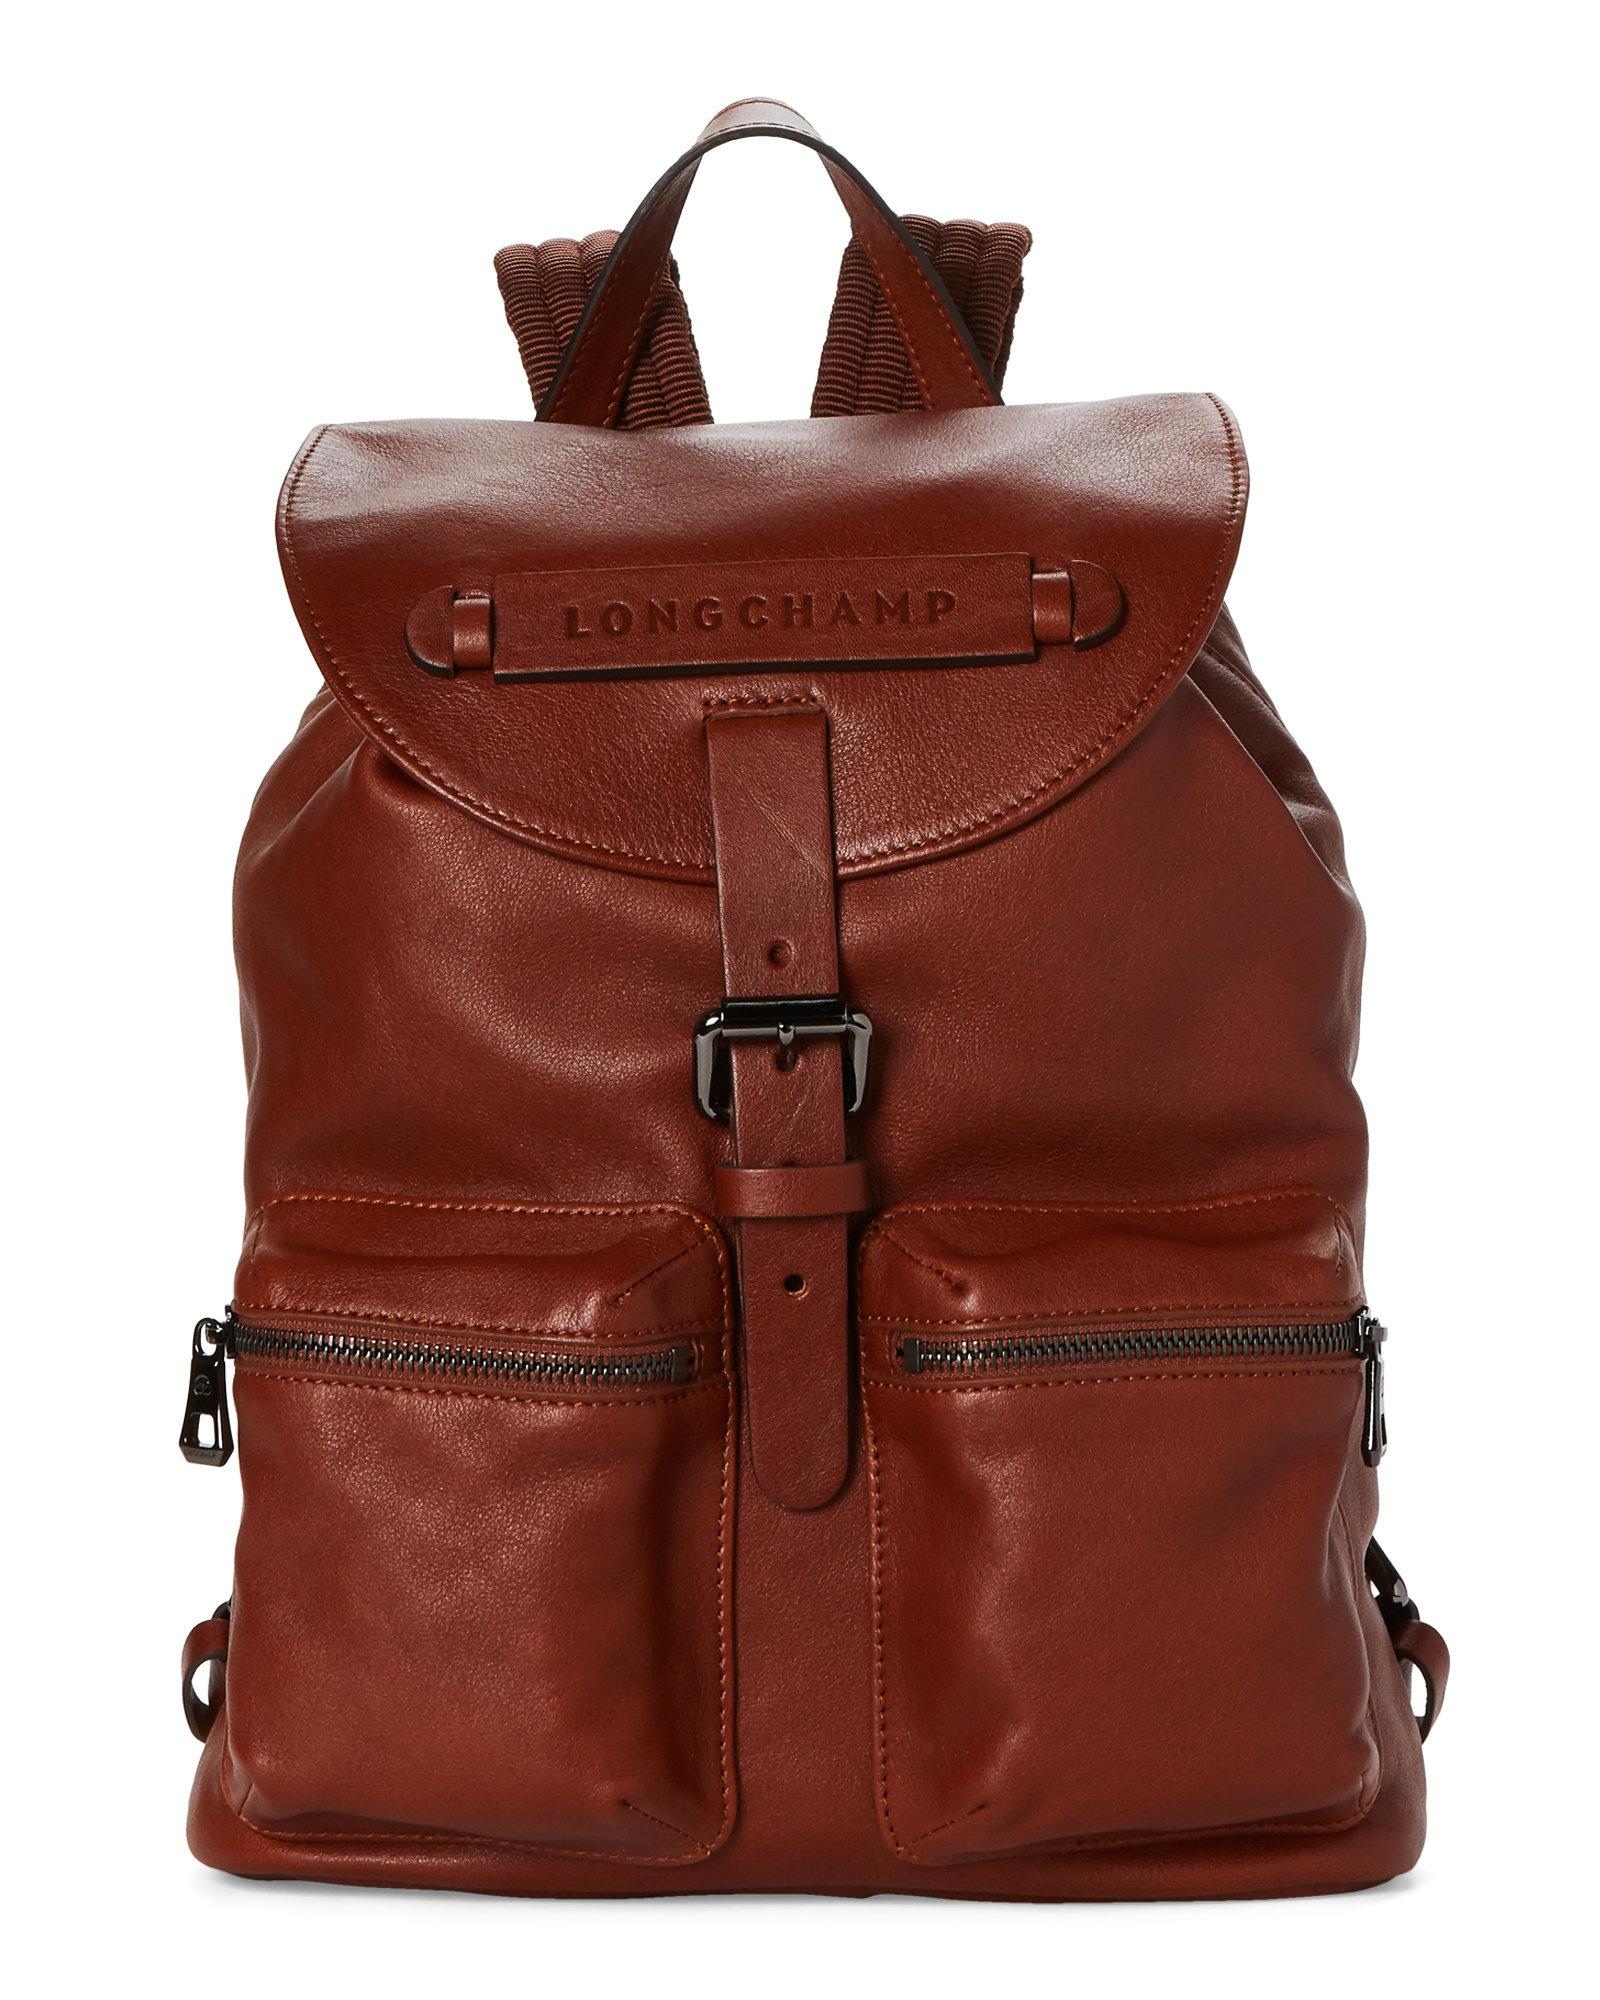 6b799df673d9 Lyst - Longchamp Brown 3d Small Leather Backpack in Brown